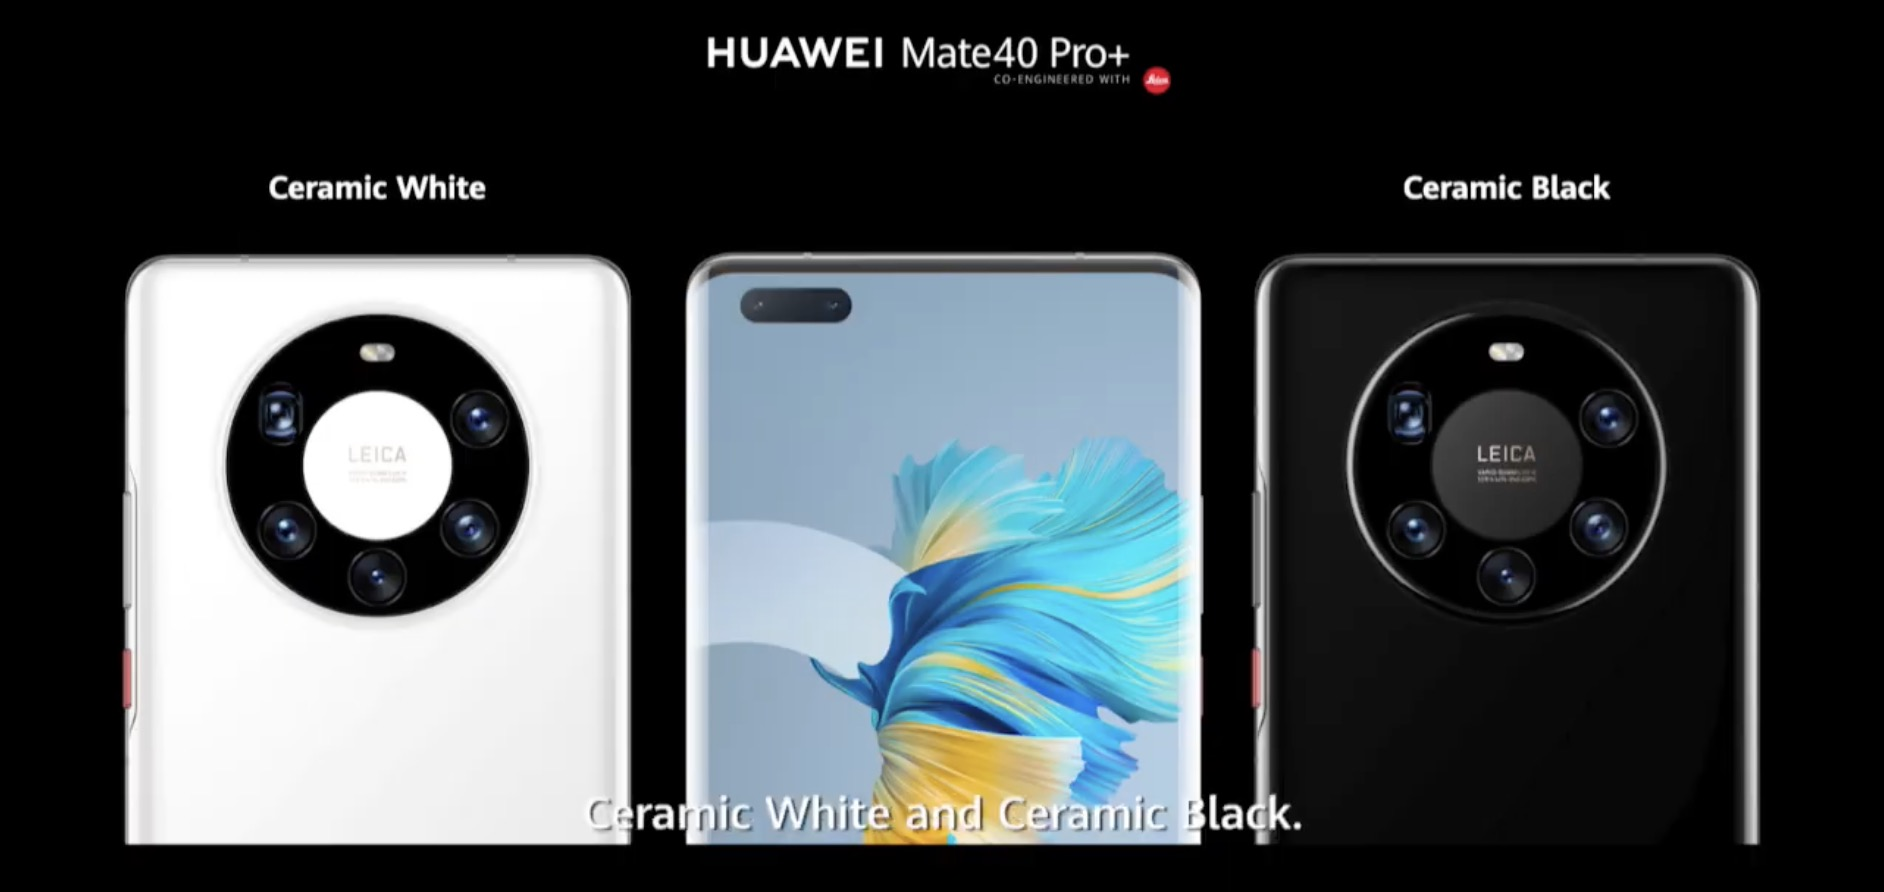 huawei mate 40 pro plus farby